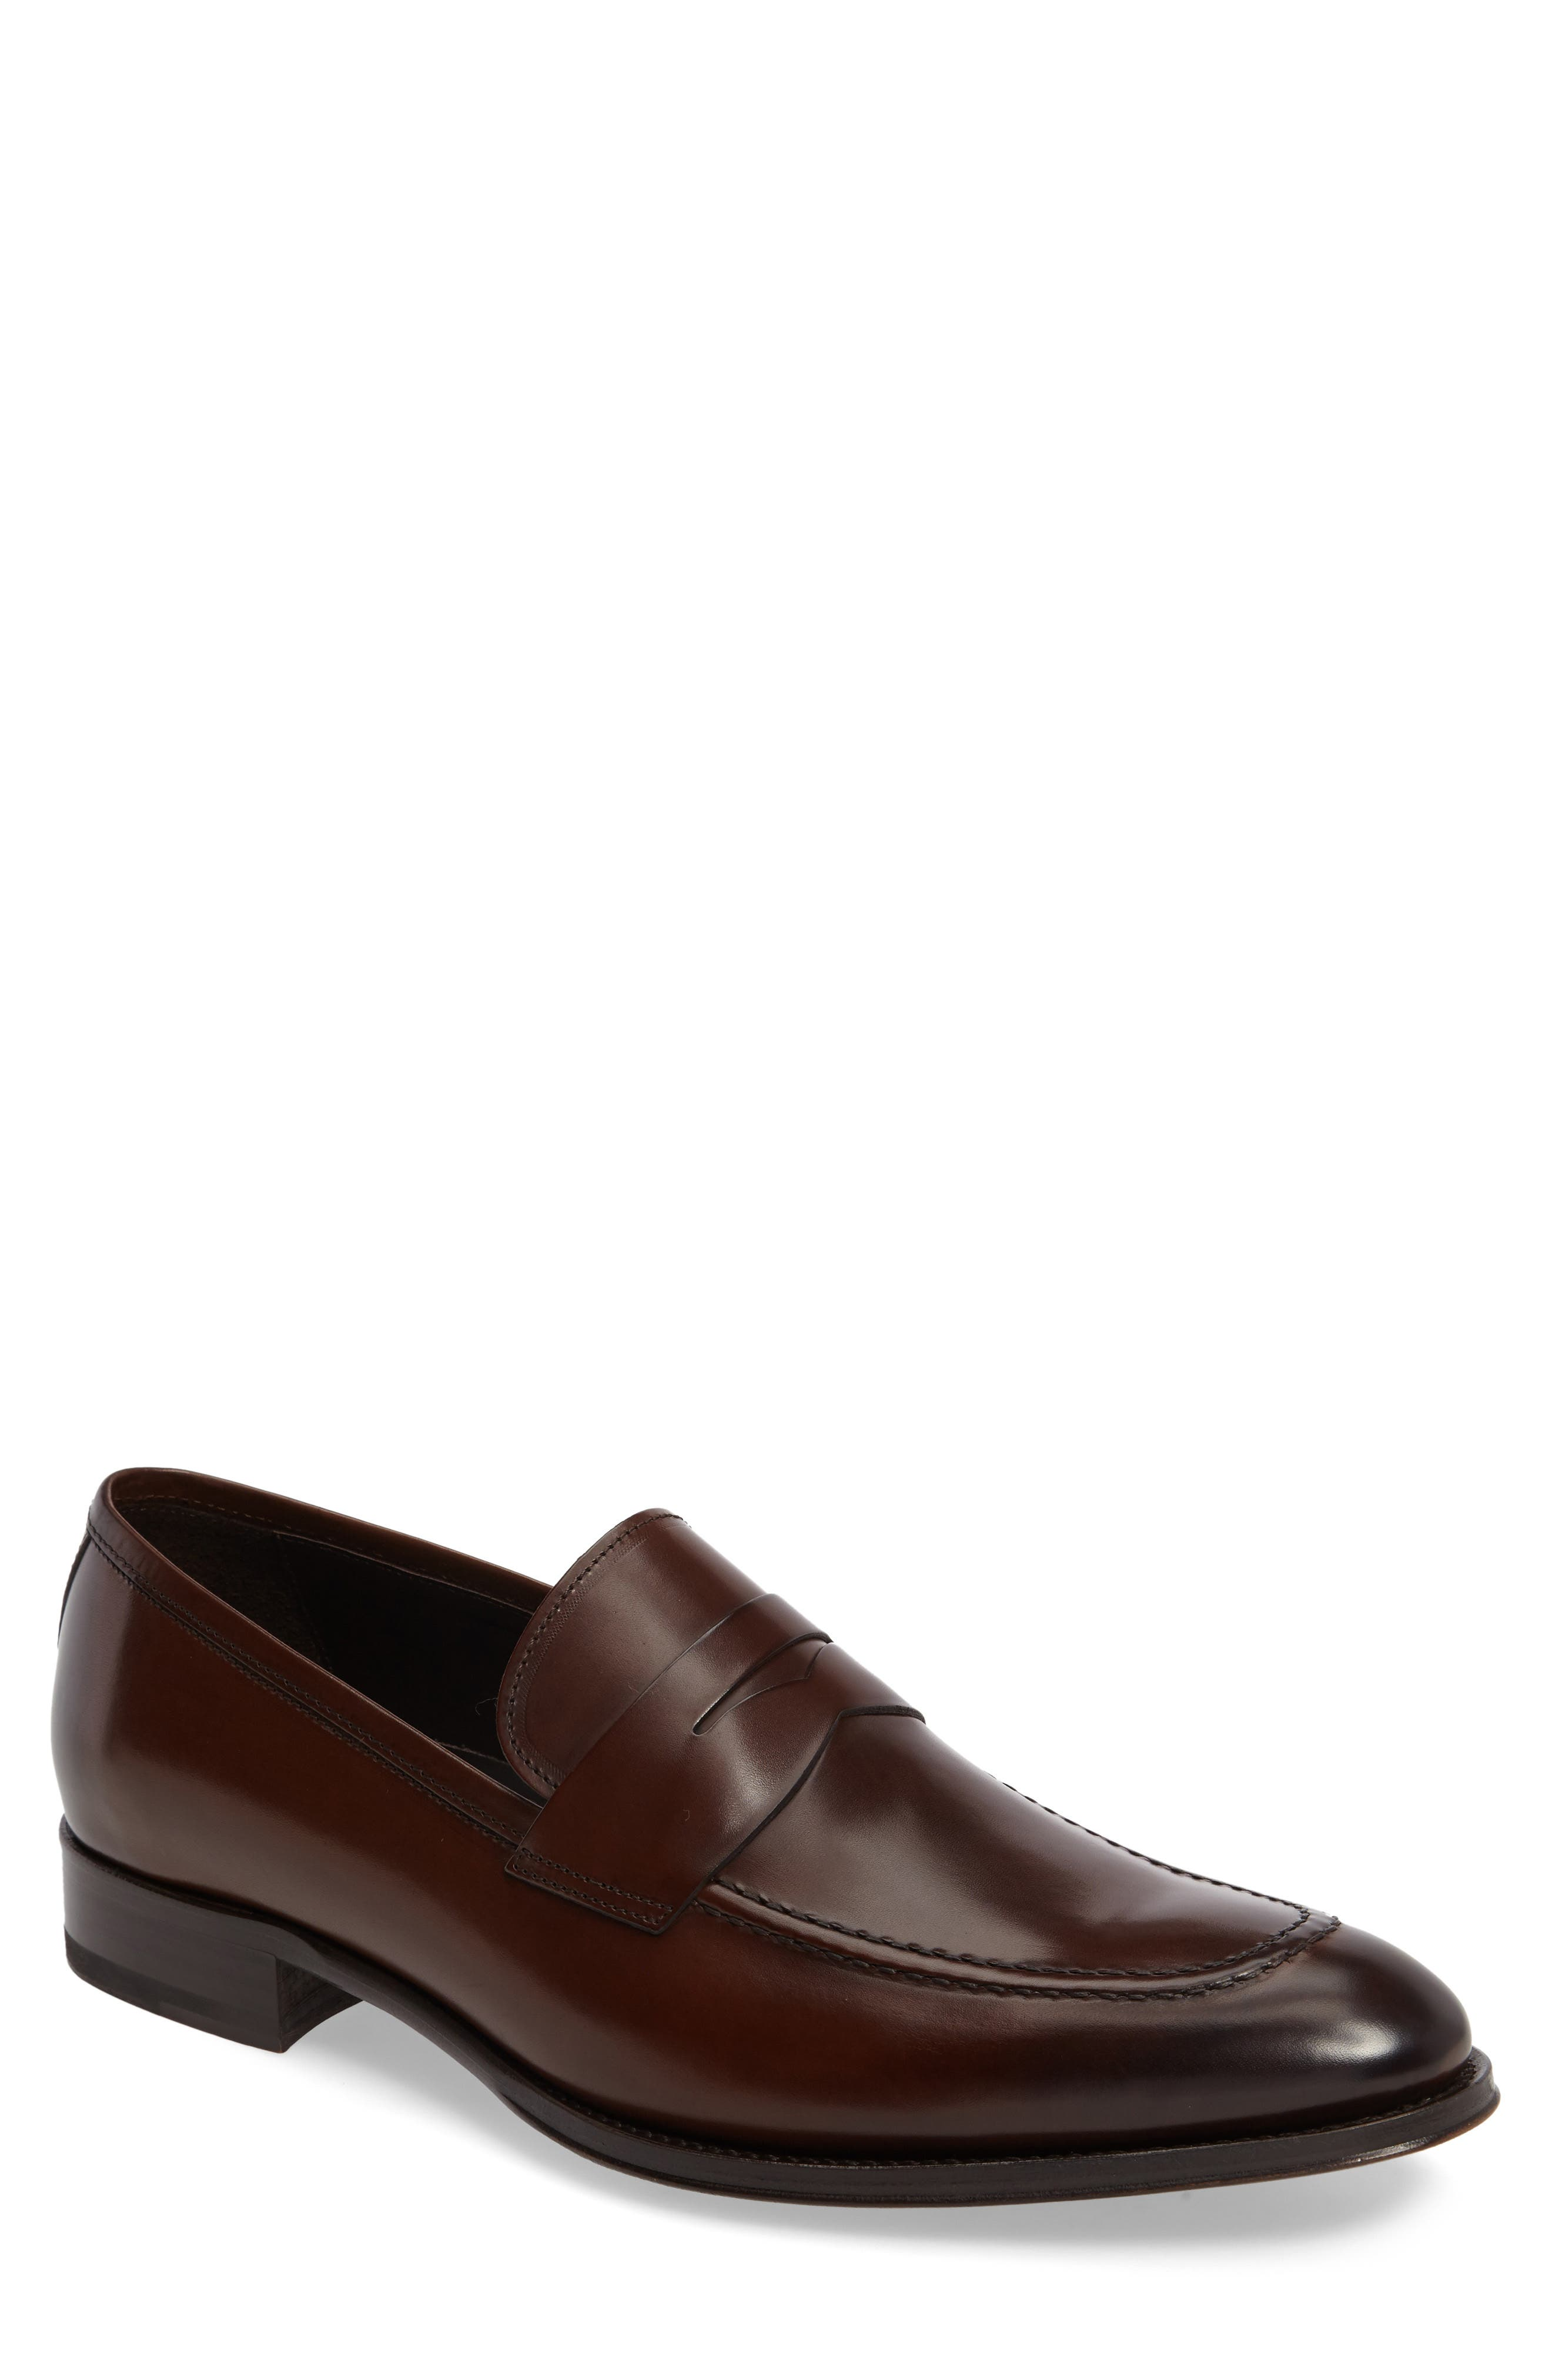 Main Image - To Boot New York Alexander Penny Loafer (Men)